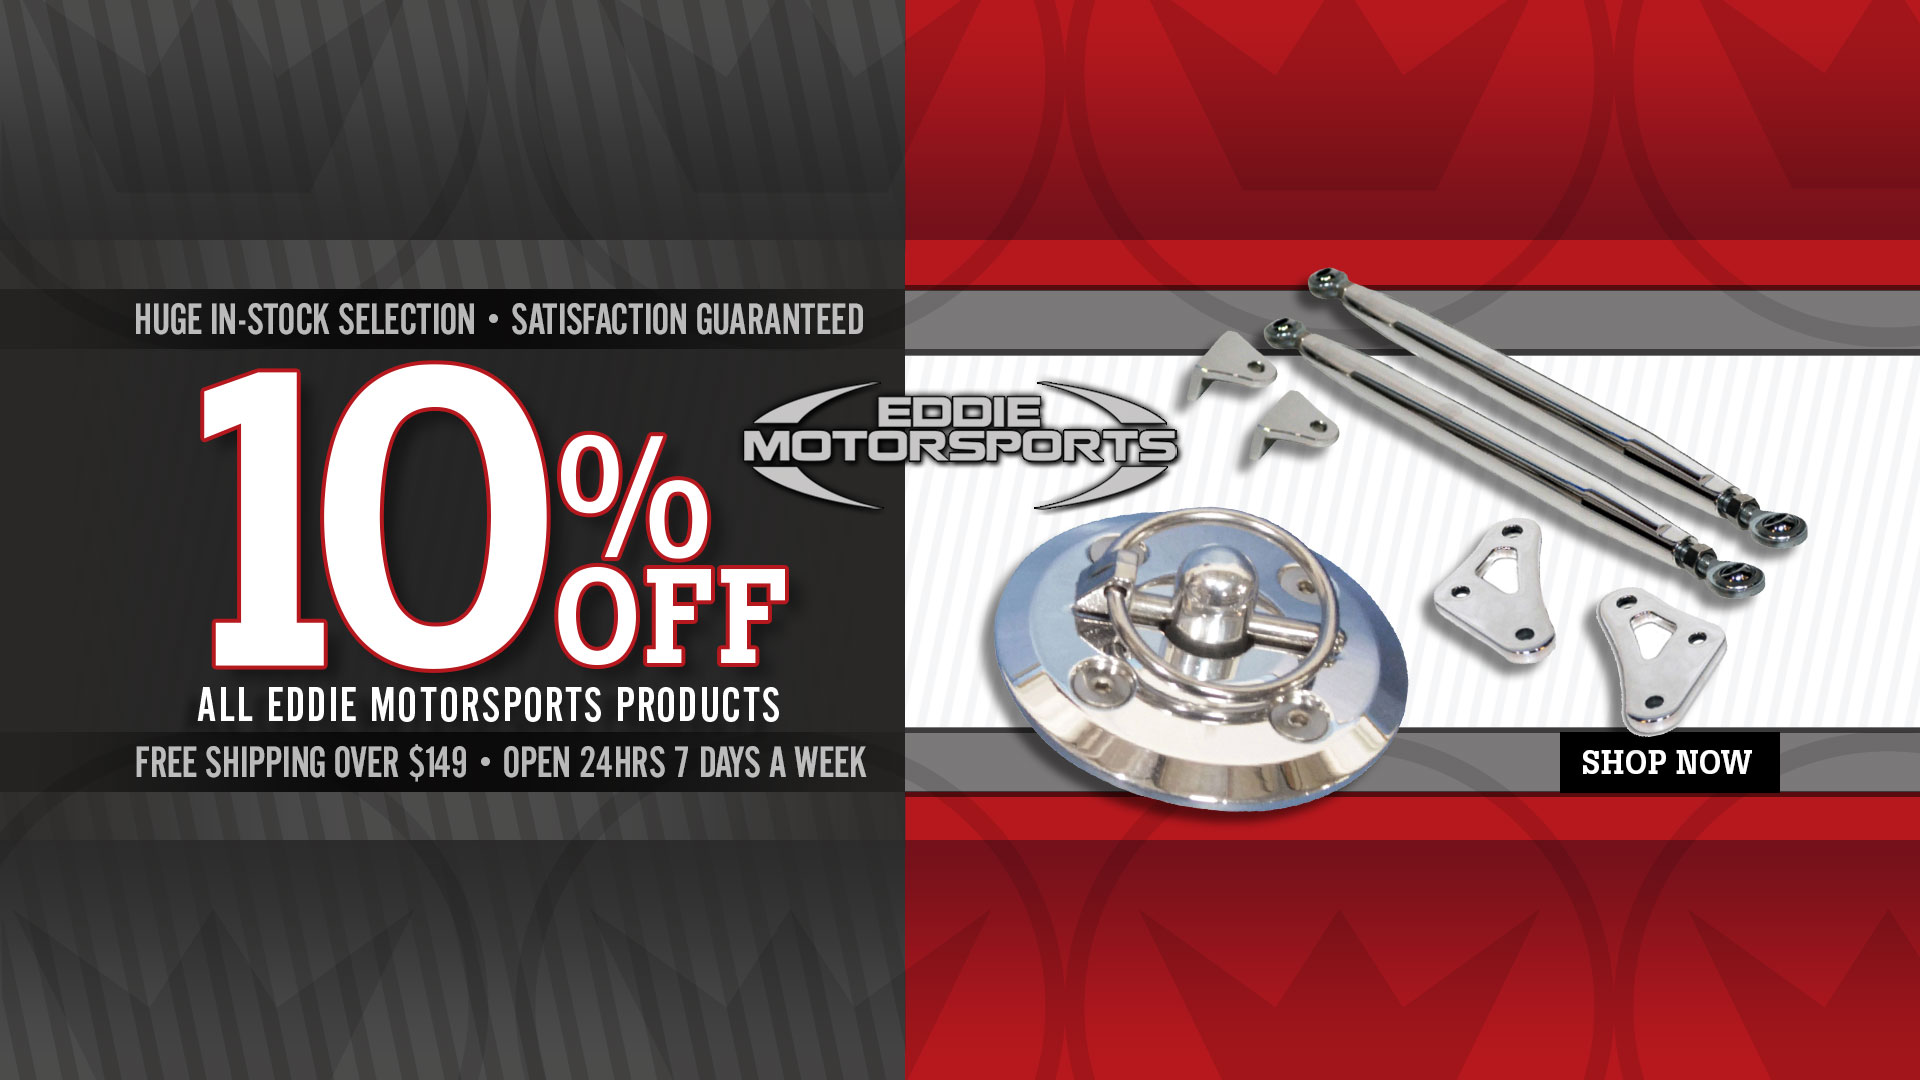 Save 10% on All Eddie Motorspots Products